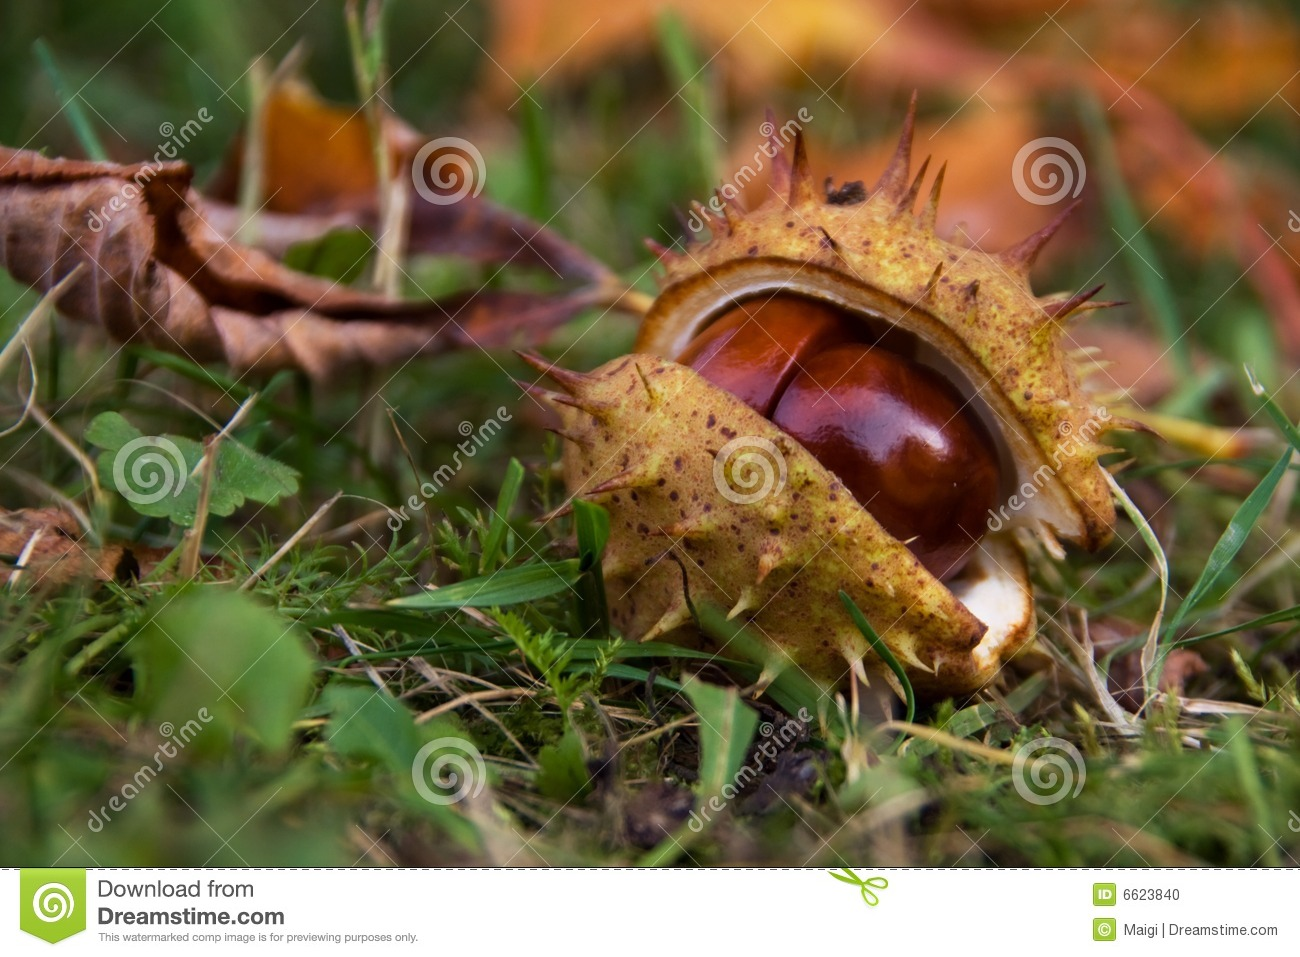 Horse chestnut in shell